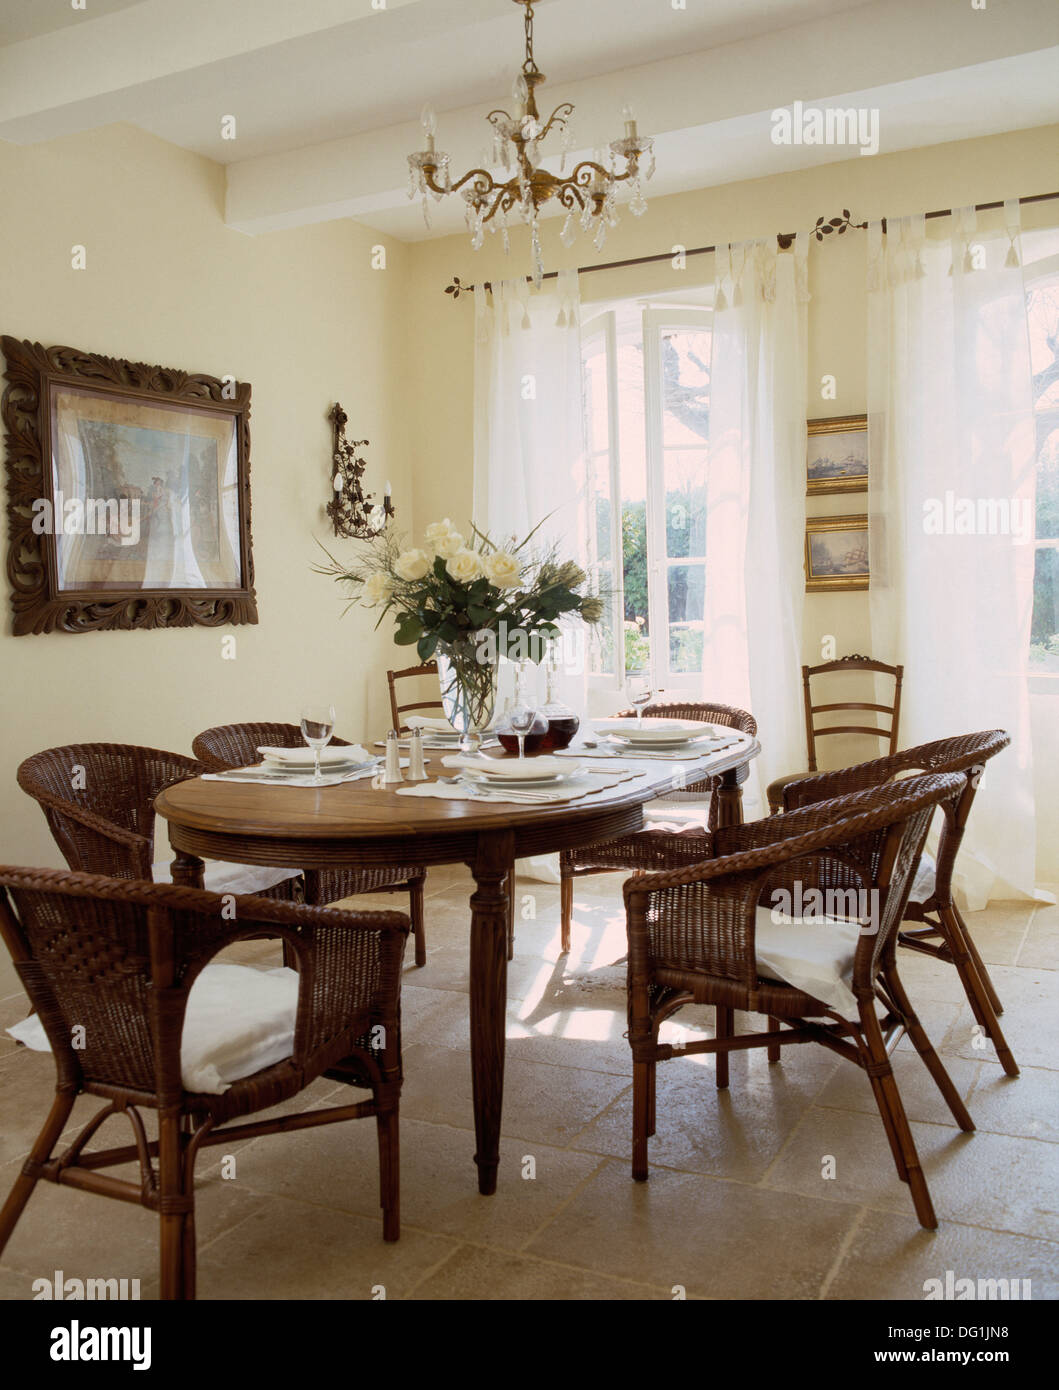 white wicker chairs and table wheelchair zombie at oval antique set for lunch in country dining room with voile drapes stone tiled floor